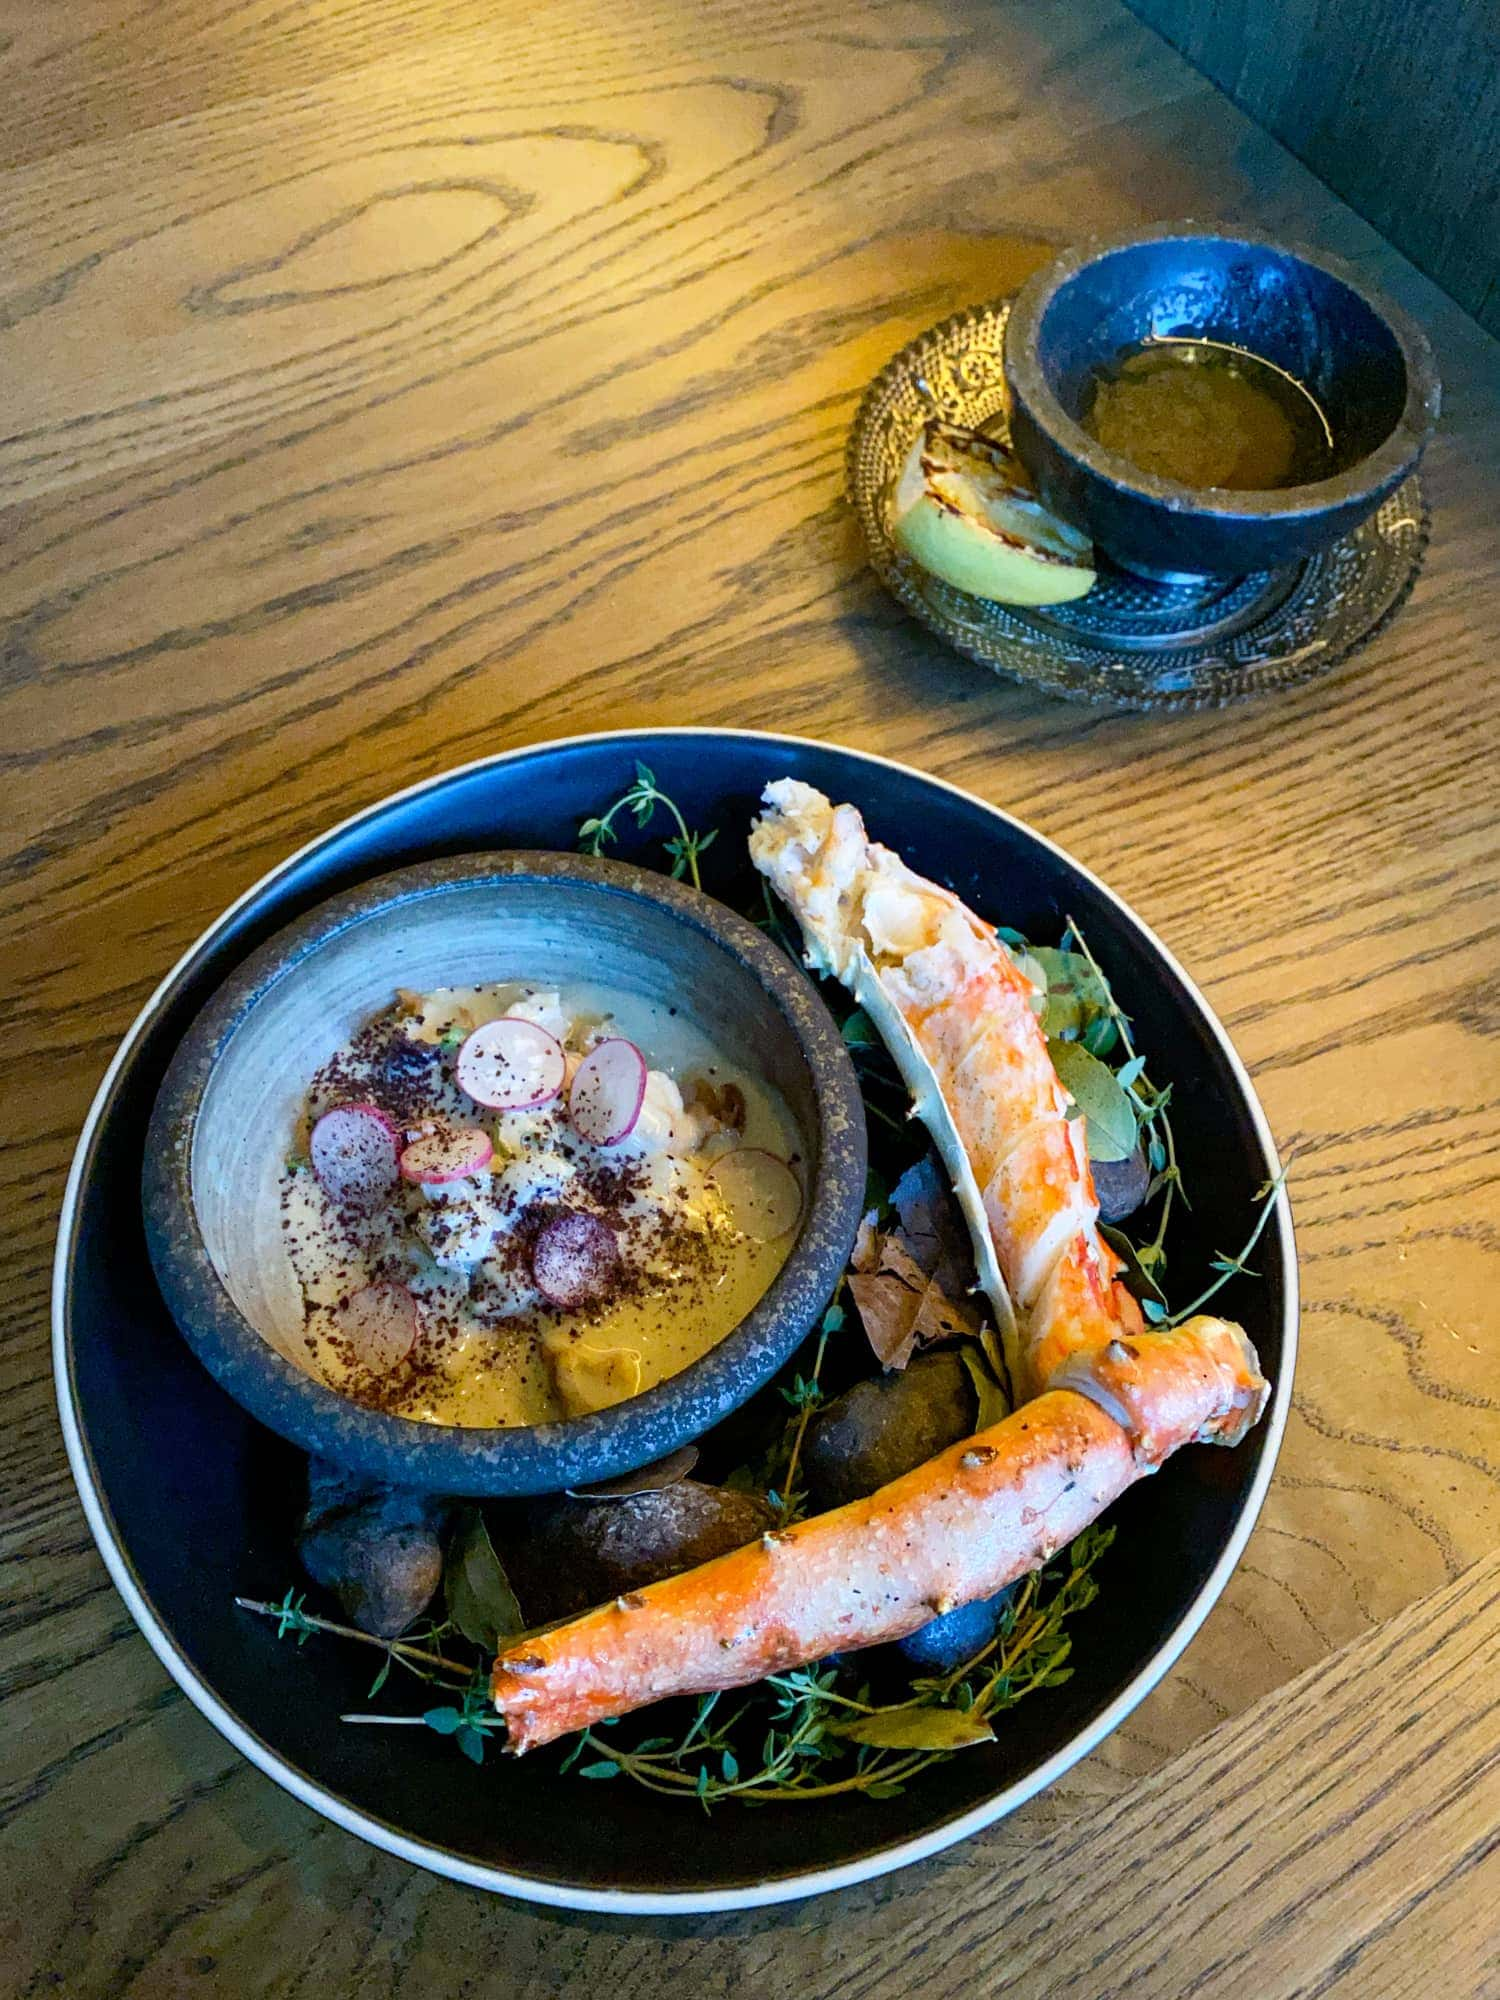 King crab with kelp butter